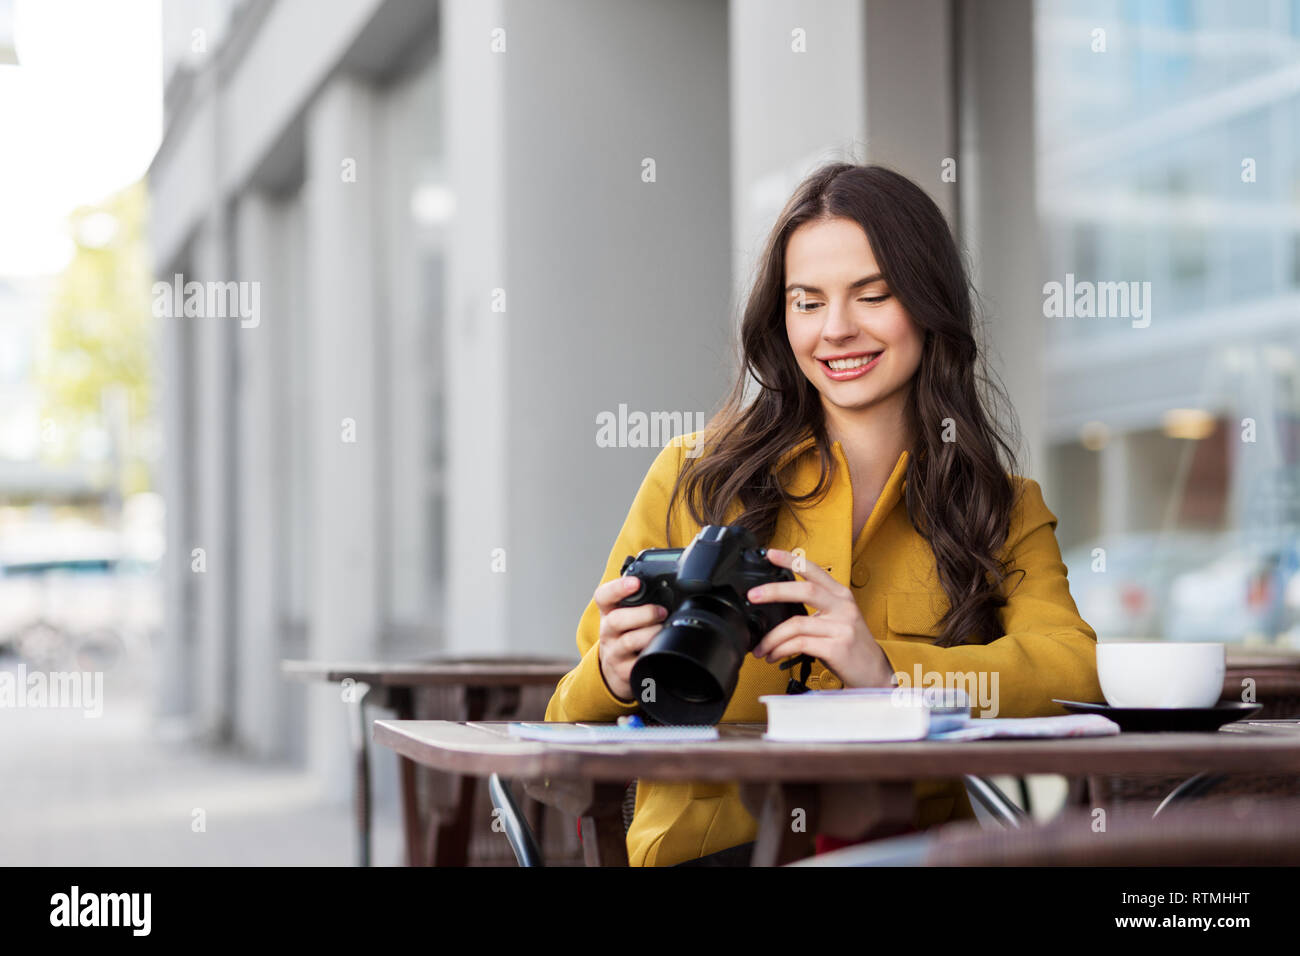 tourist or teenage girl with camera at city cafe - Stock Image